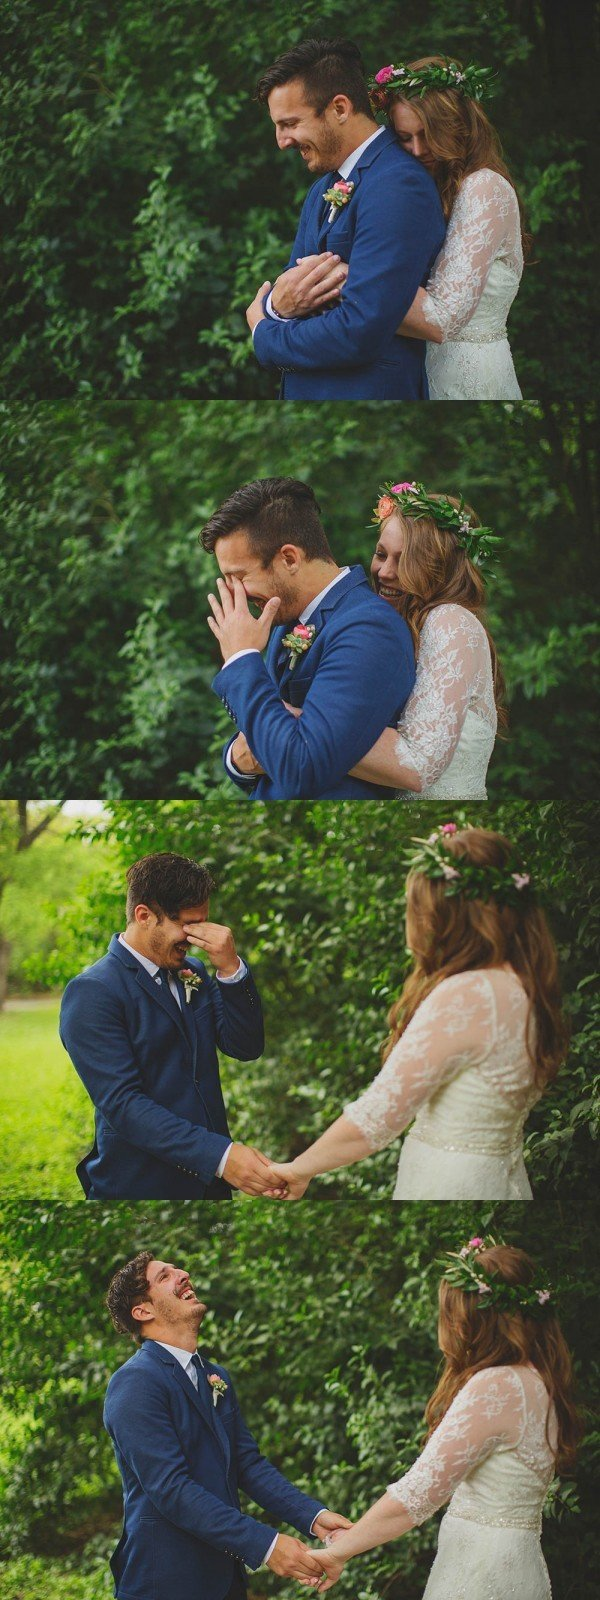 heart melting first look wedding photos